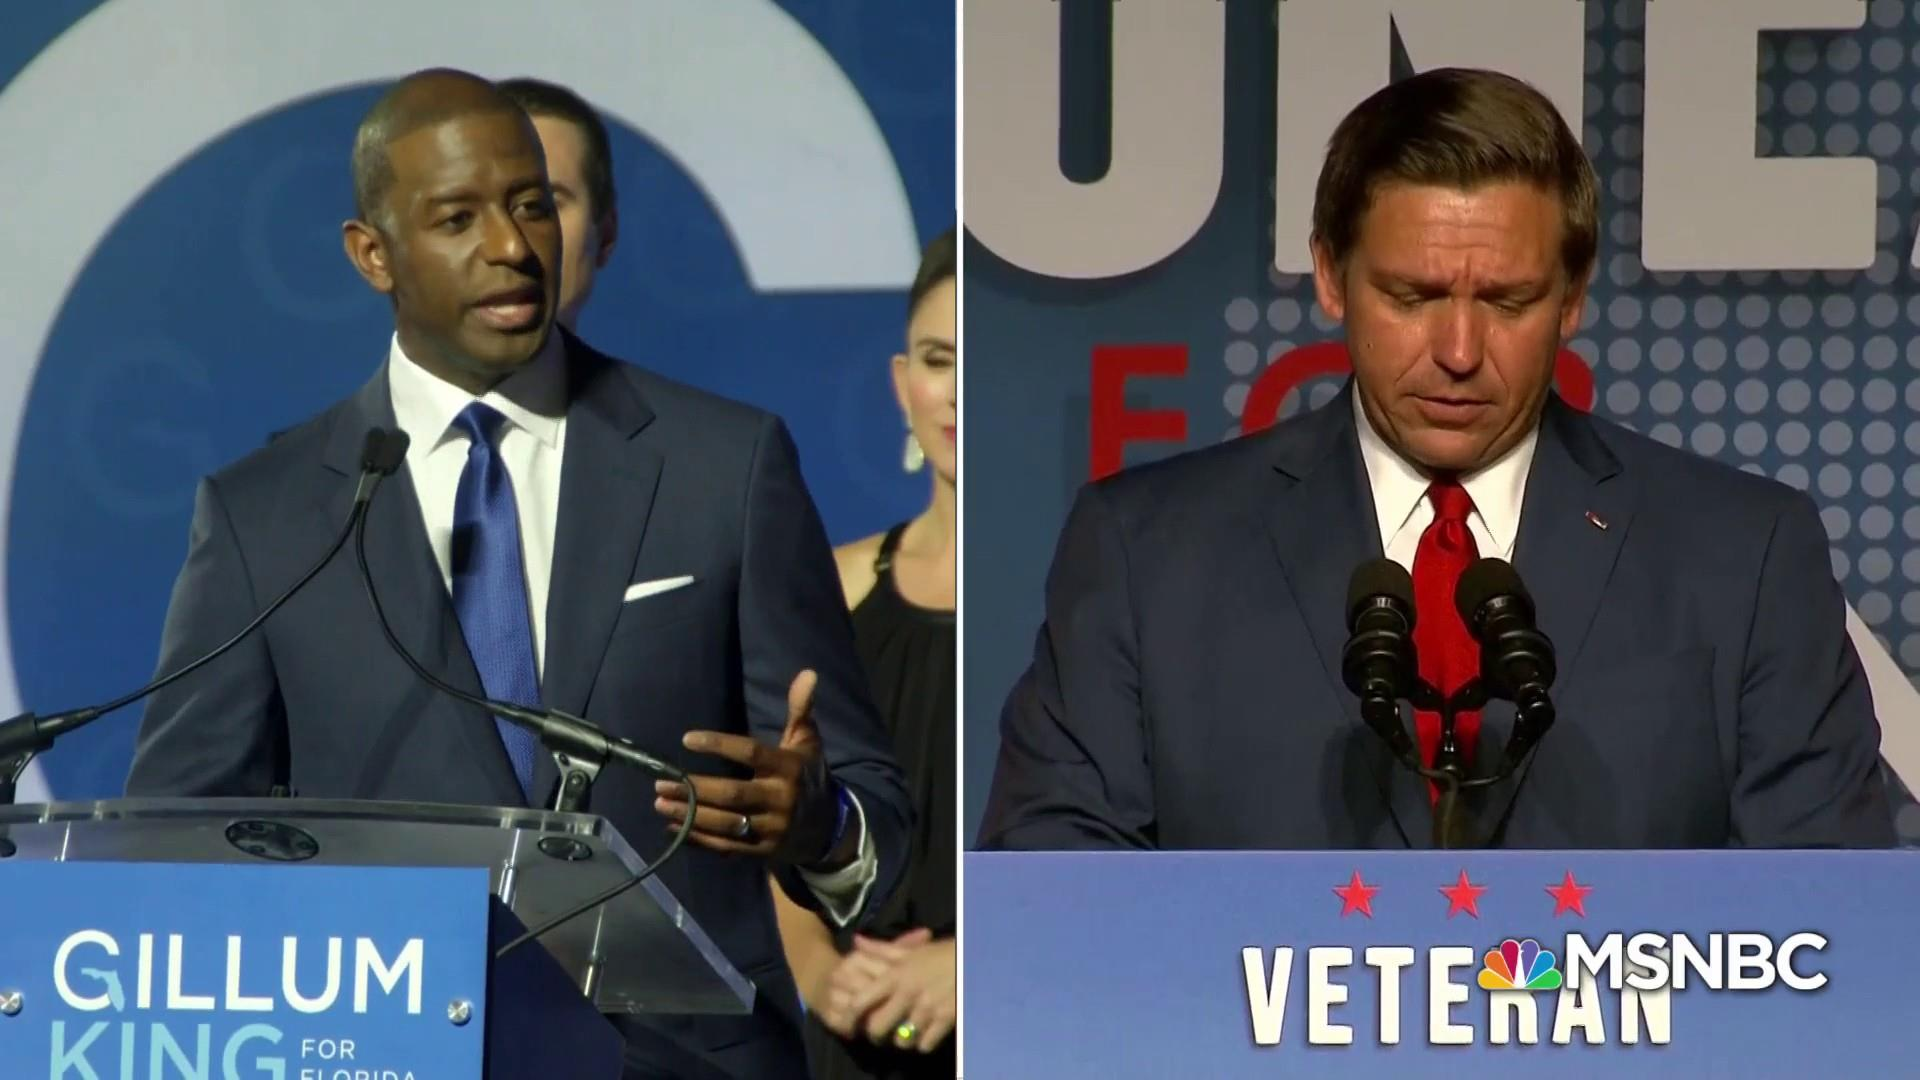 Andrew Gillum to make surprise address to Democratic donors amid 2020 buzz